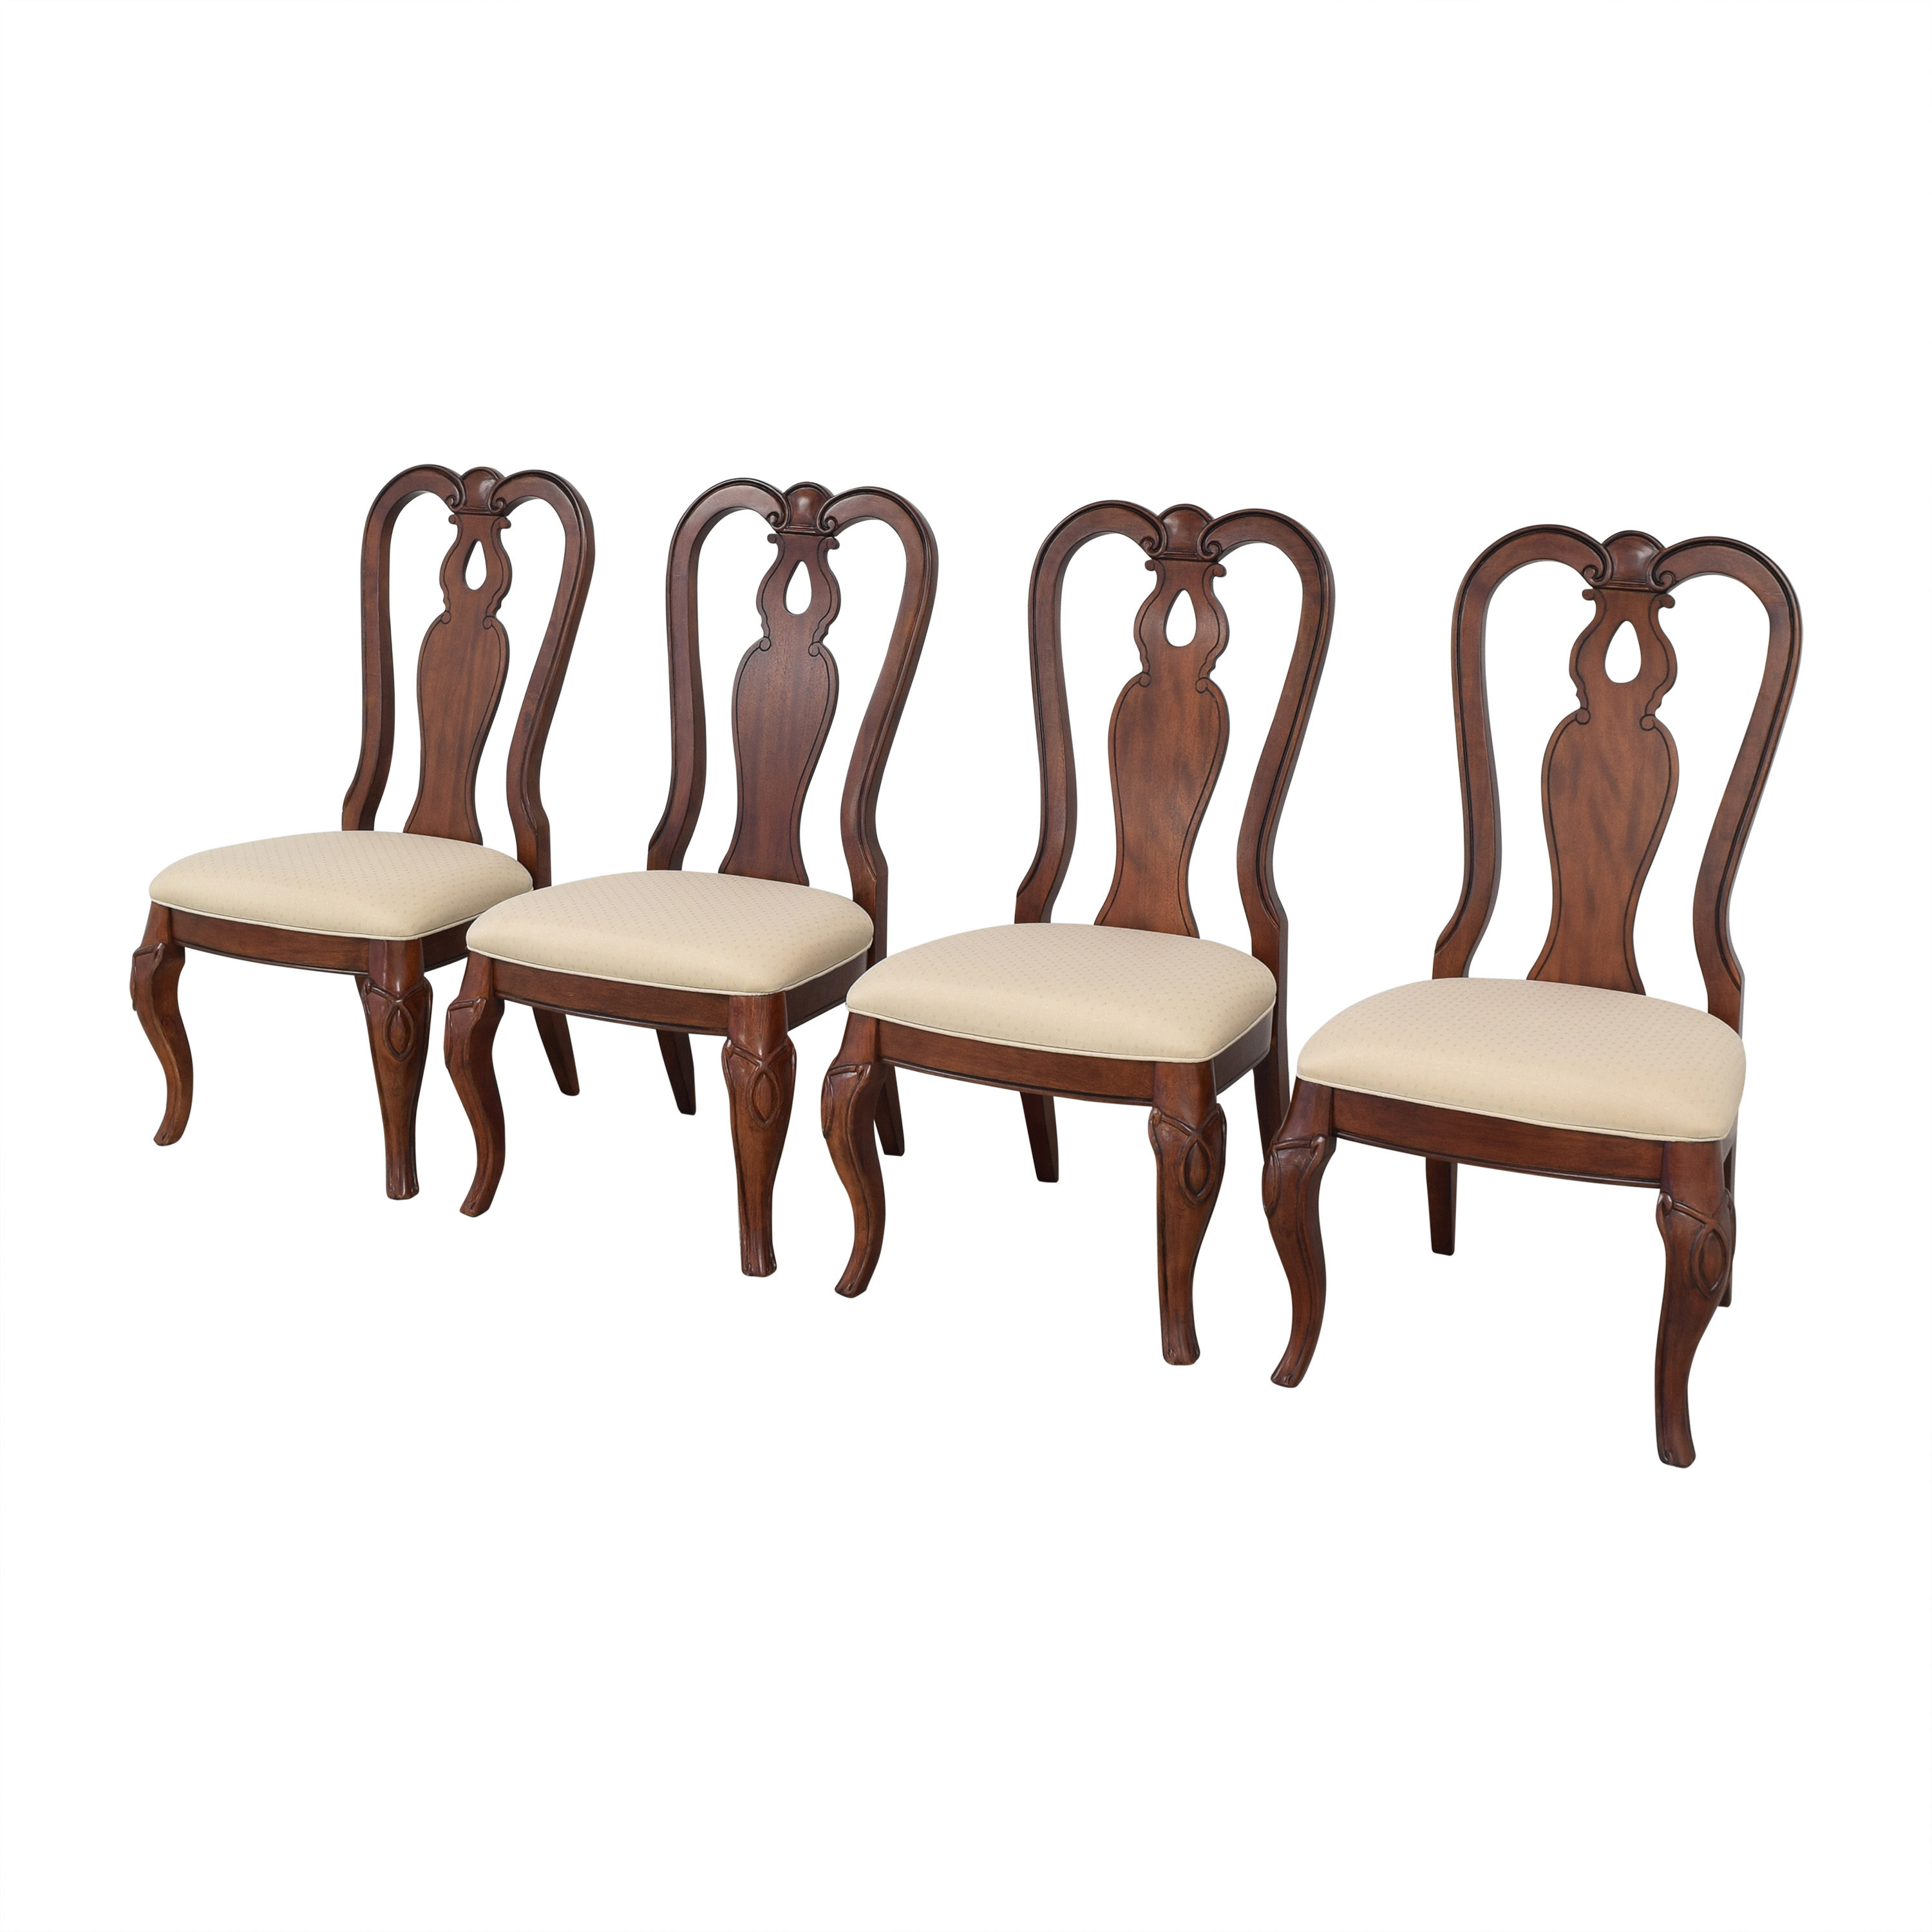 shop Macys Bordeaux Dining Chairs Macy's Dining Chairs